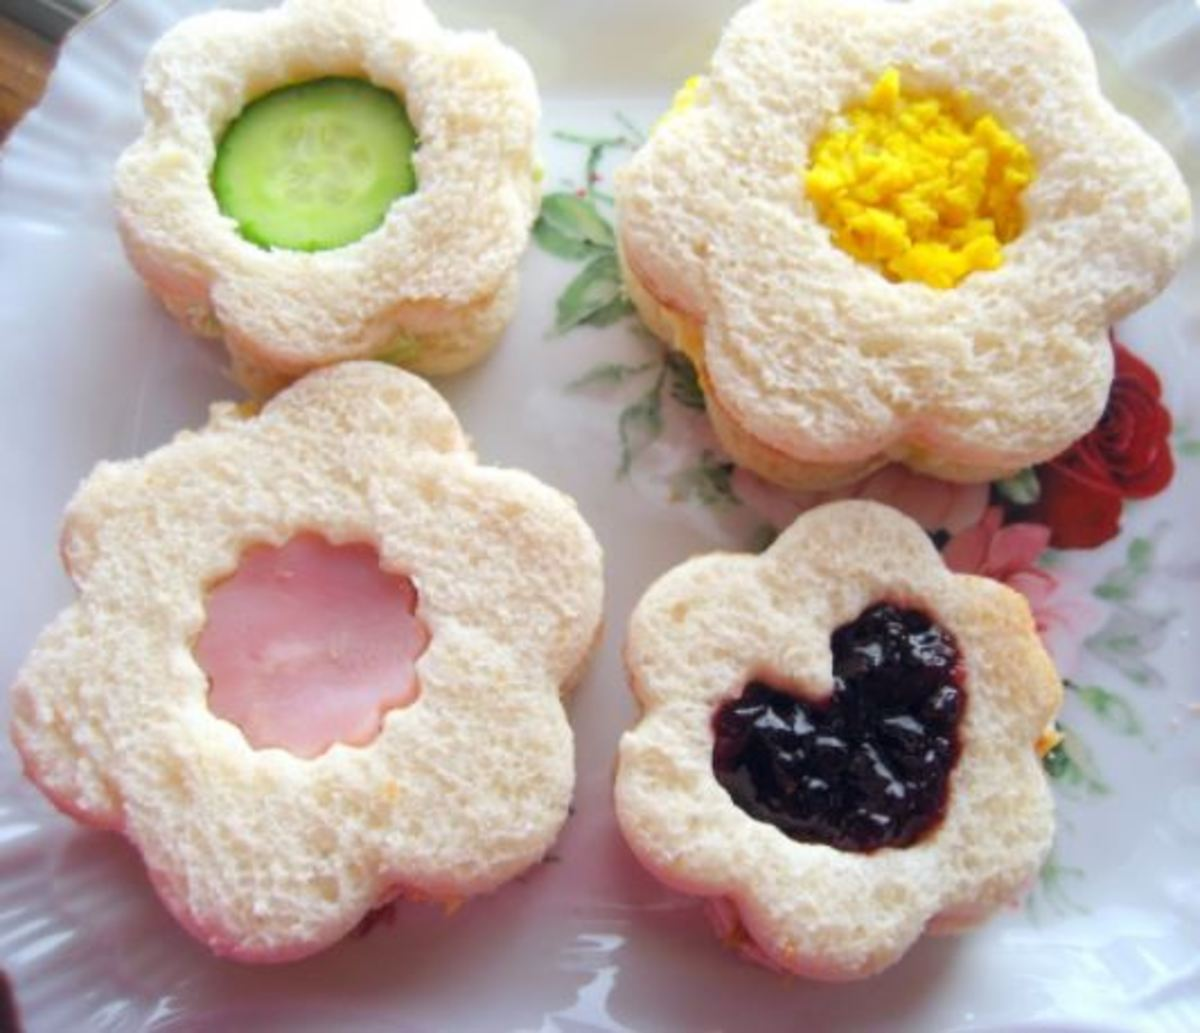 7 Fun & Creative Sandwich Ideas for Kids